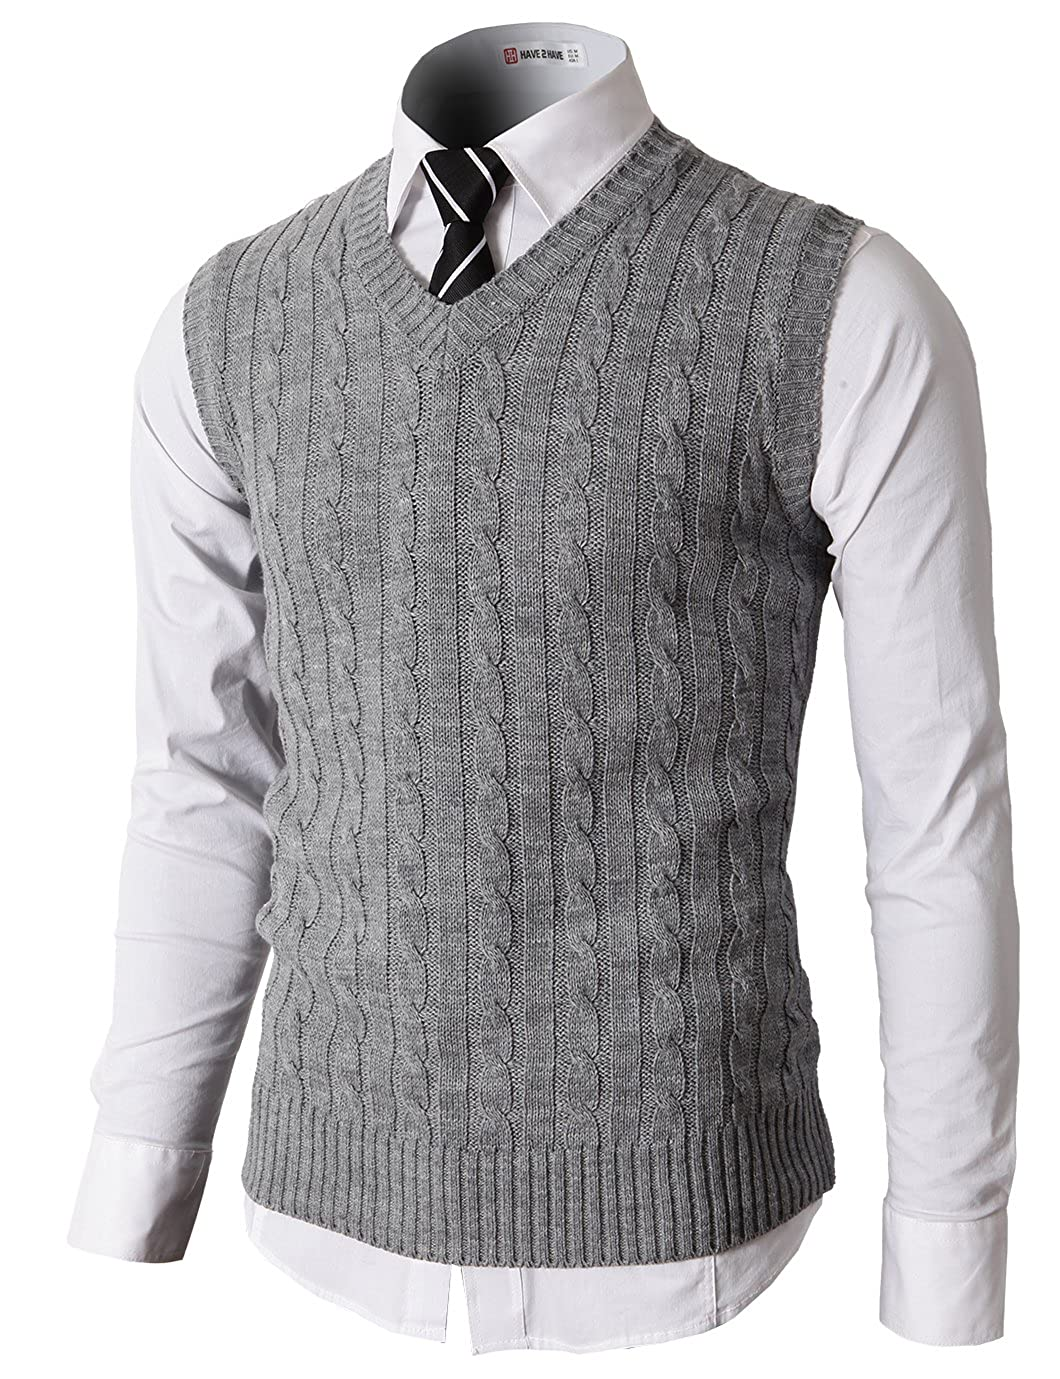 Men's Vintage Christmas Gift Ideas H2H Mens Casual Knitted Slim Fit V-neck Vest With Twisted Patterned $26.80 AT vintagedancer.com